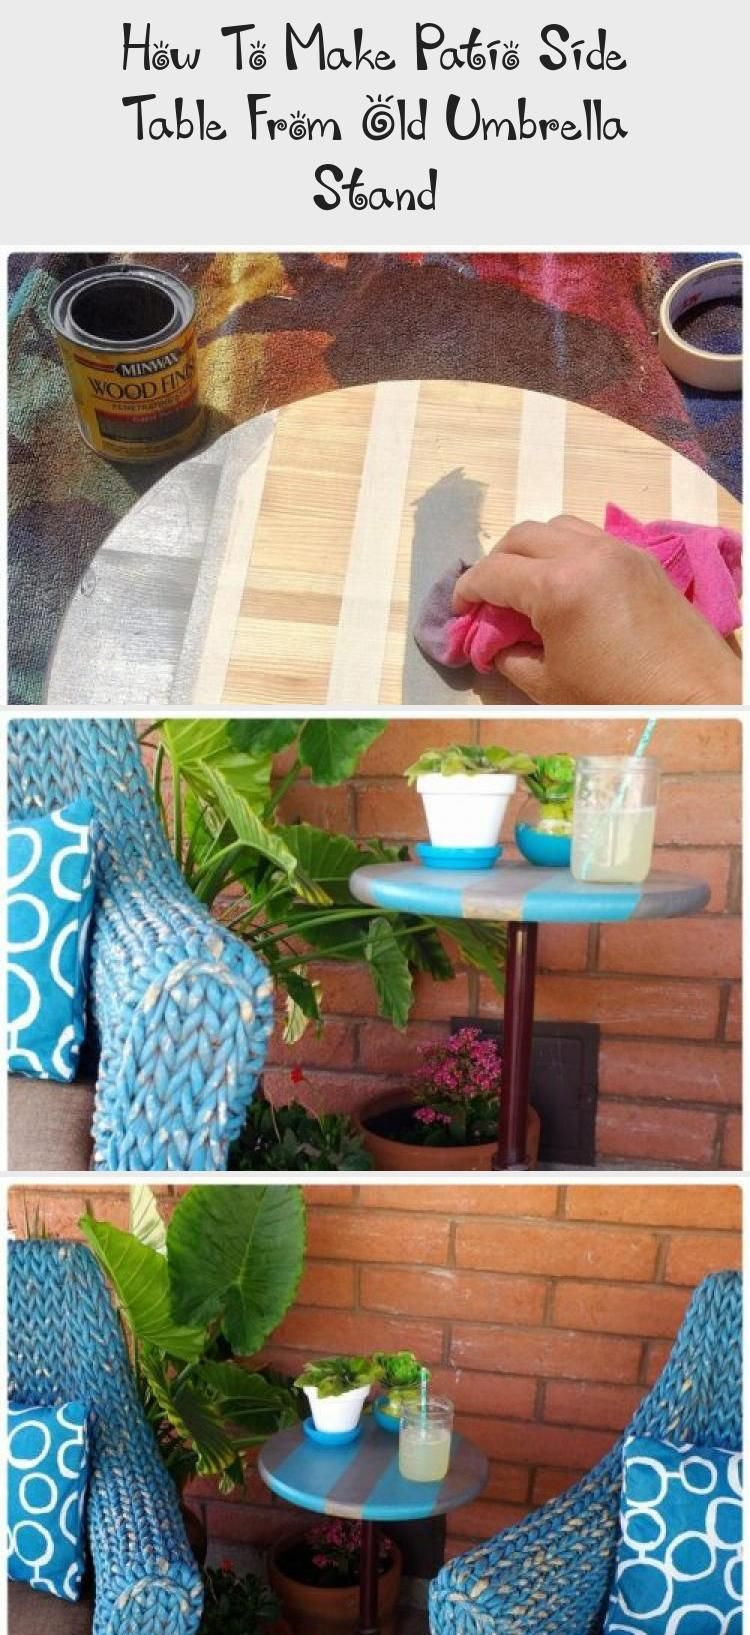 How To Make Patio Side Table From Old Umbrella Stand #outdoorumbrellastand